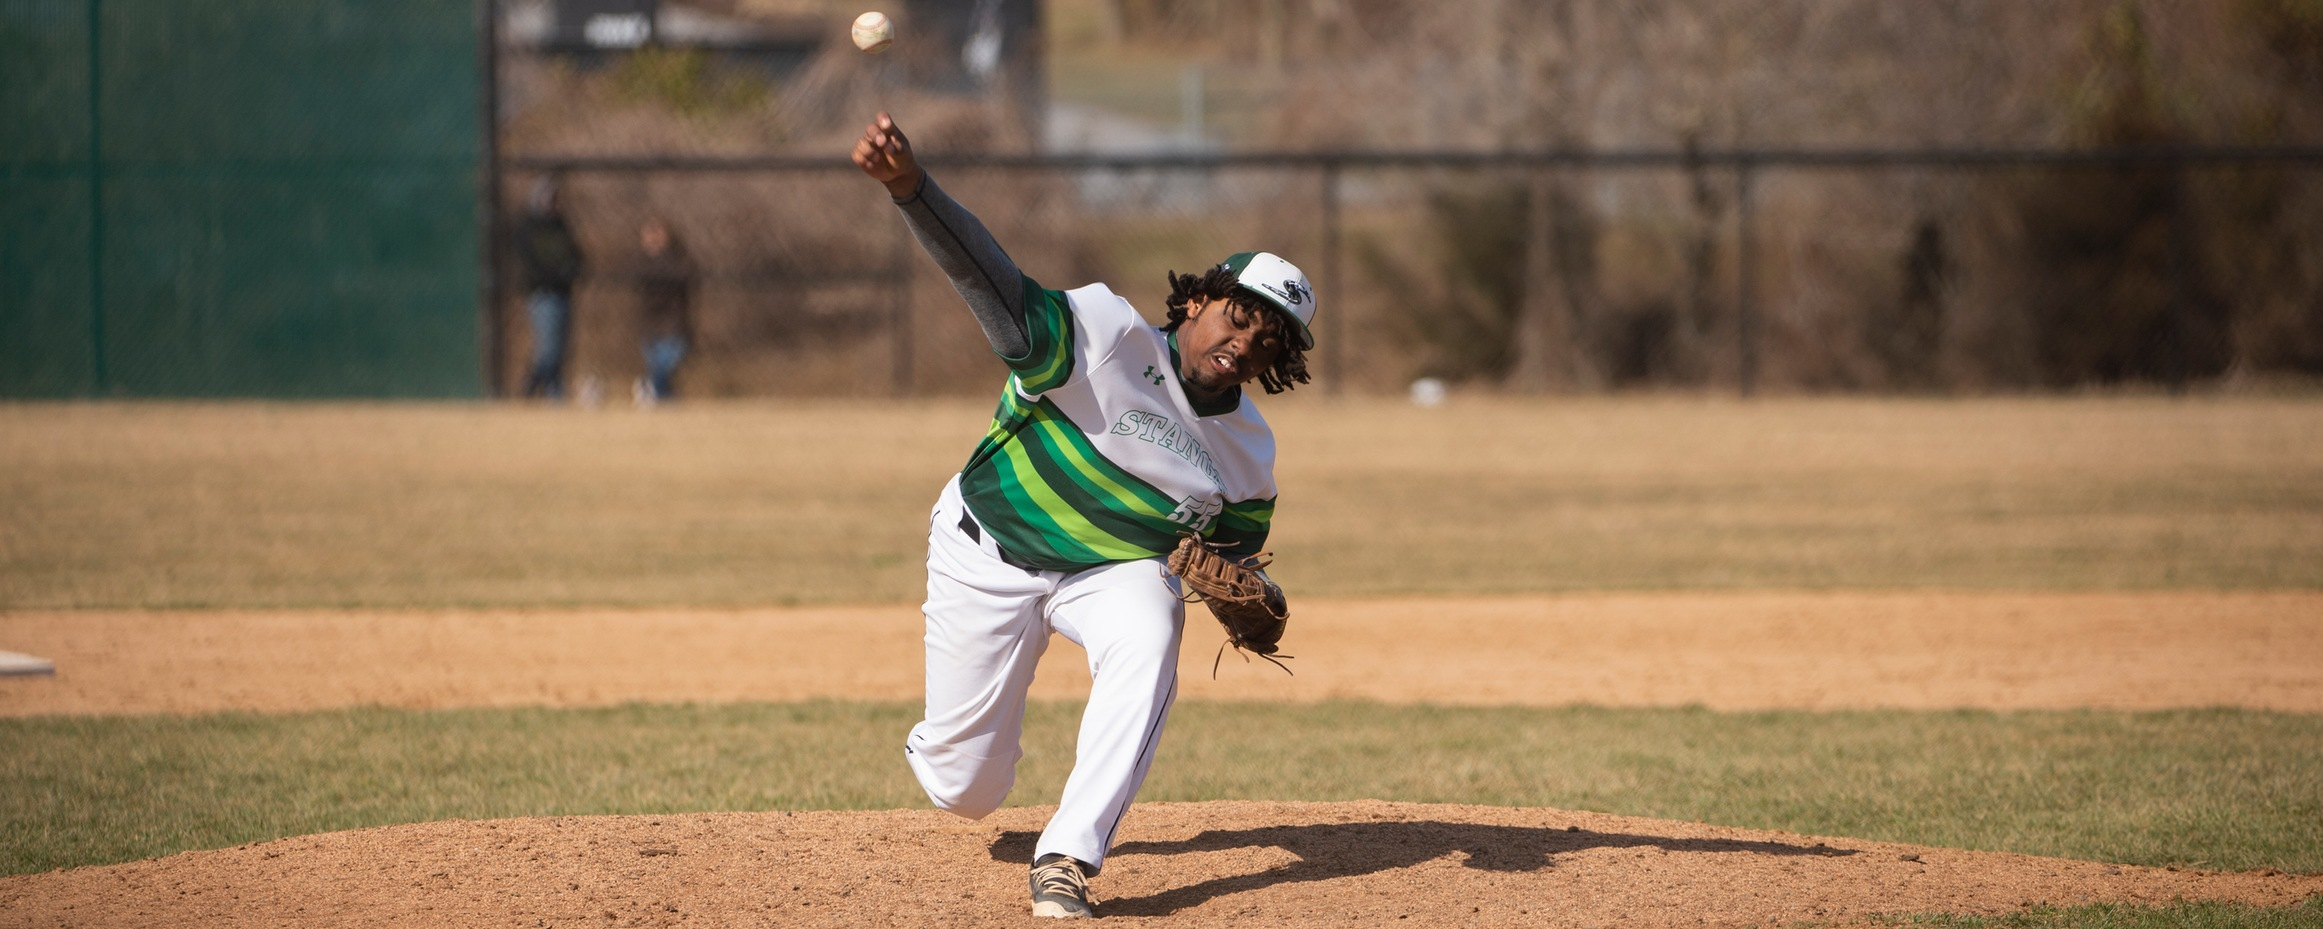 Strong Pitching Leads To Doubleheader Sweep Over Hood